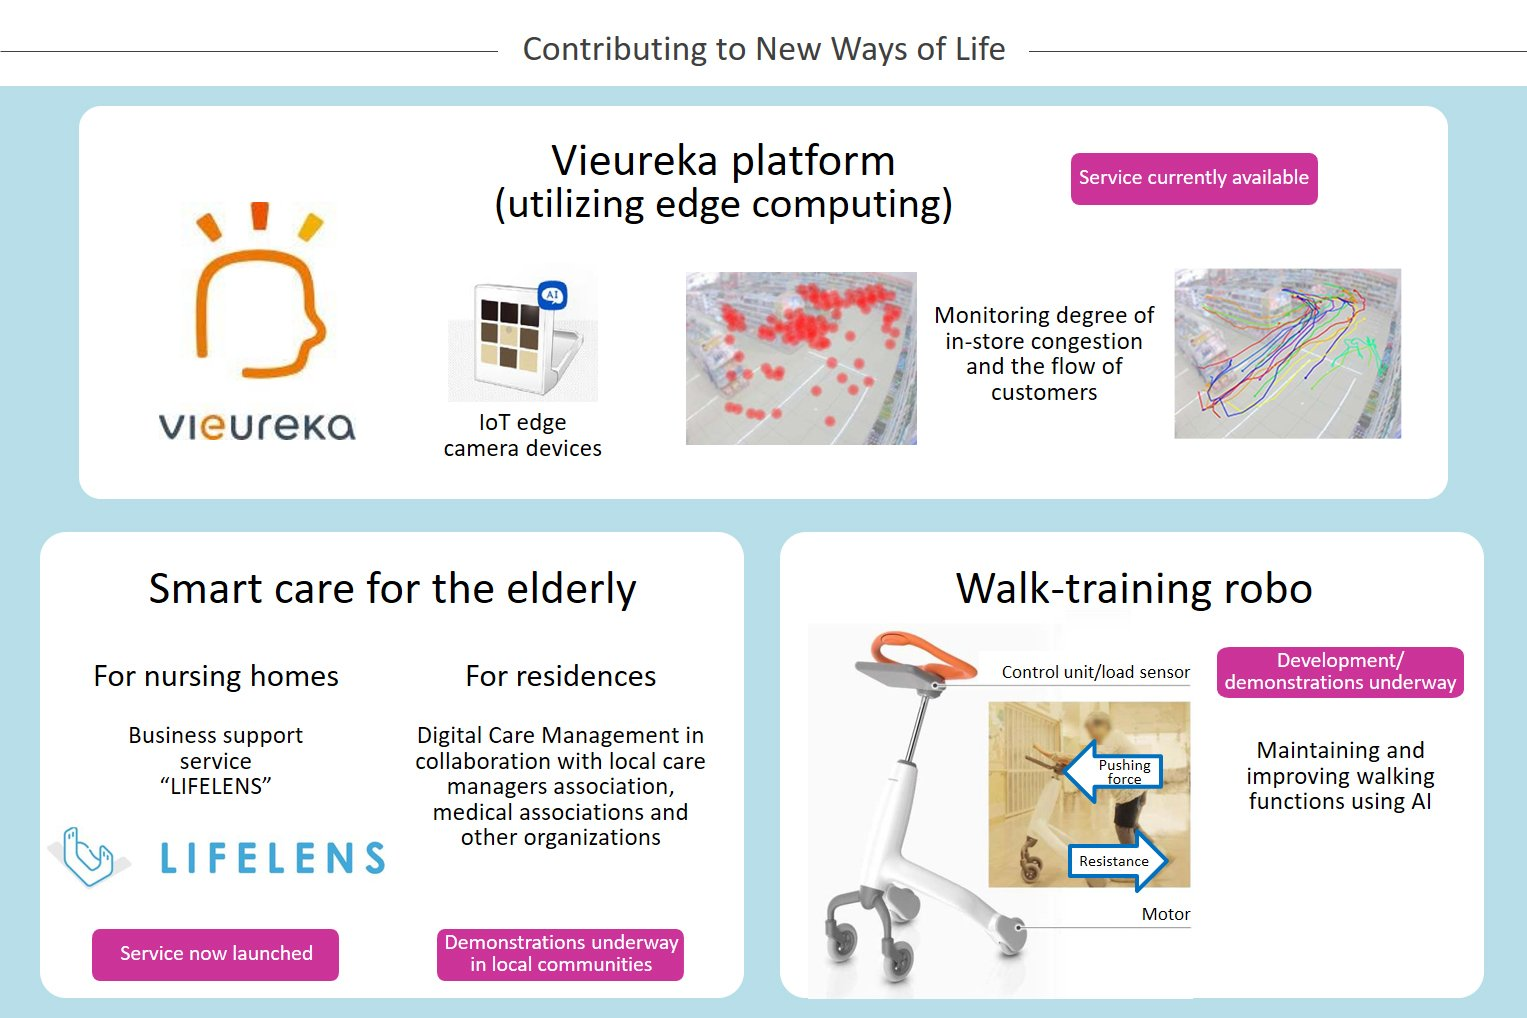 Illustration: Contributing to new ways of life